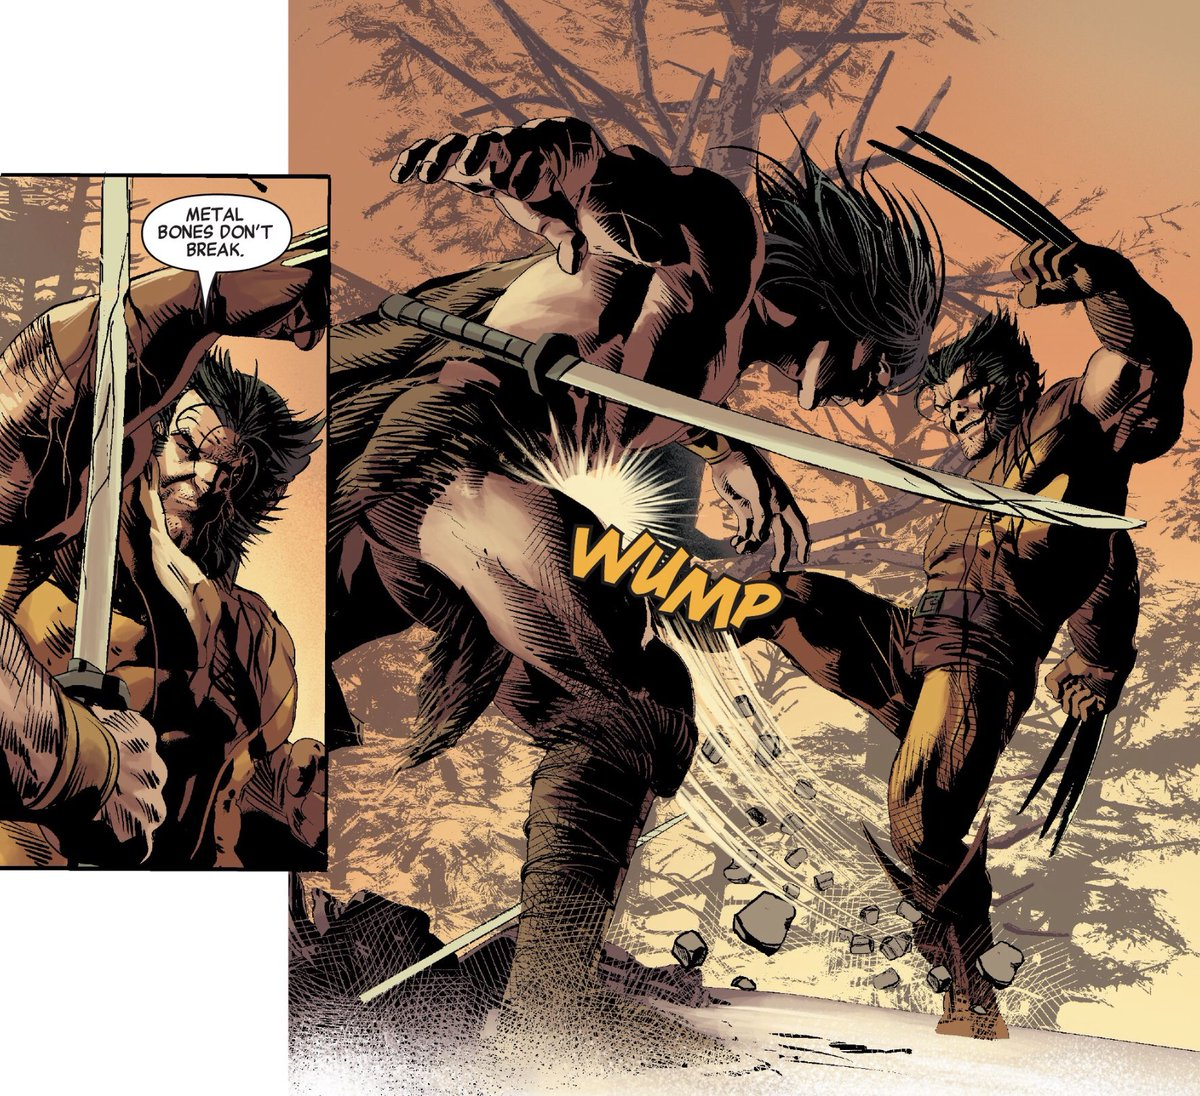 Conan came all the way to the Marvel Universe for...